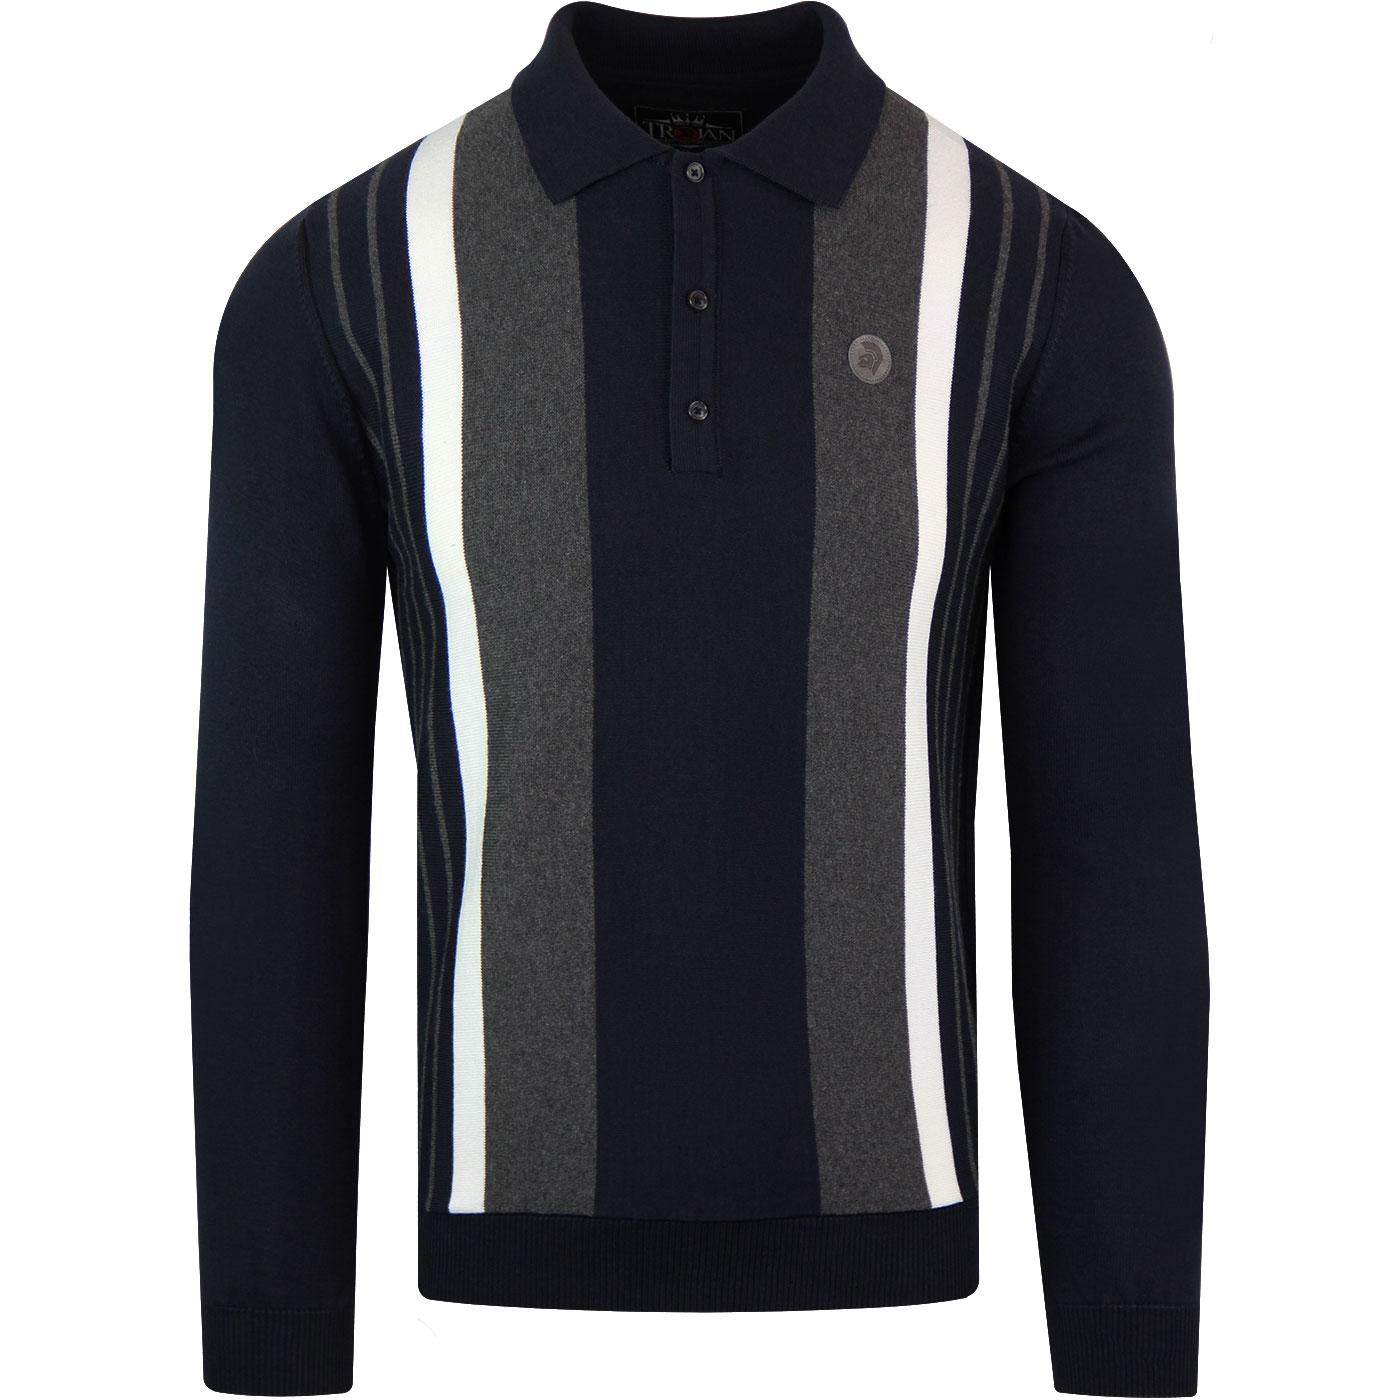 TROJAN RECORDS Mod Knitted Stripe Panel Polo -Navy